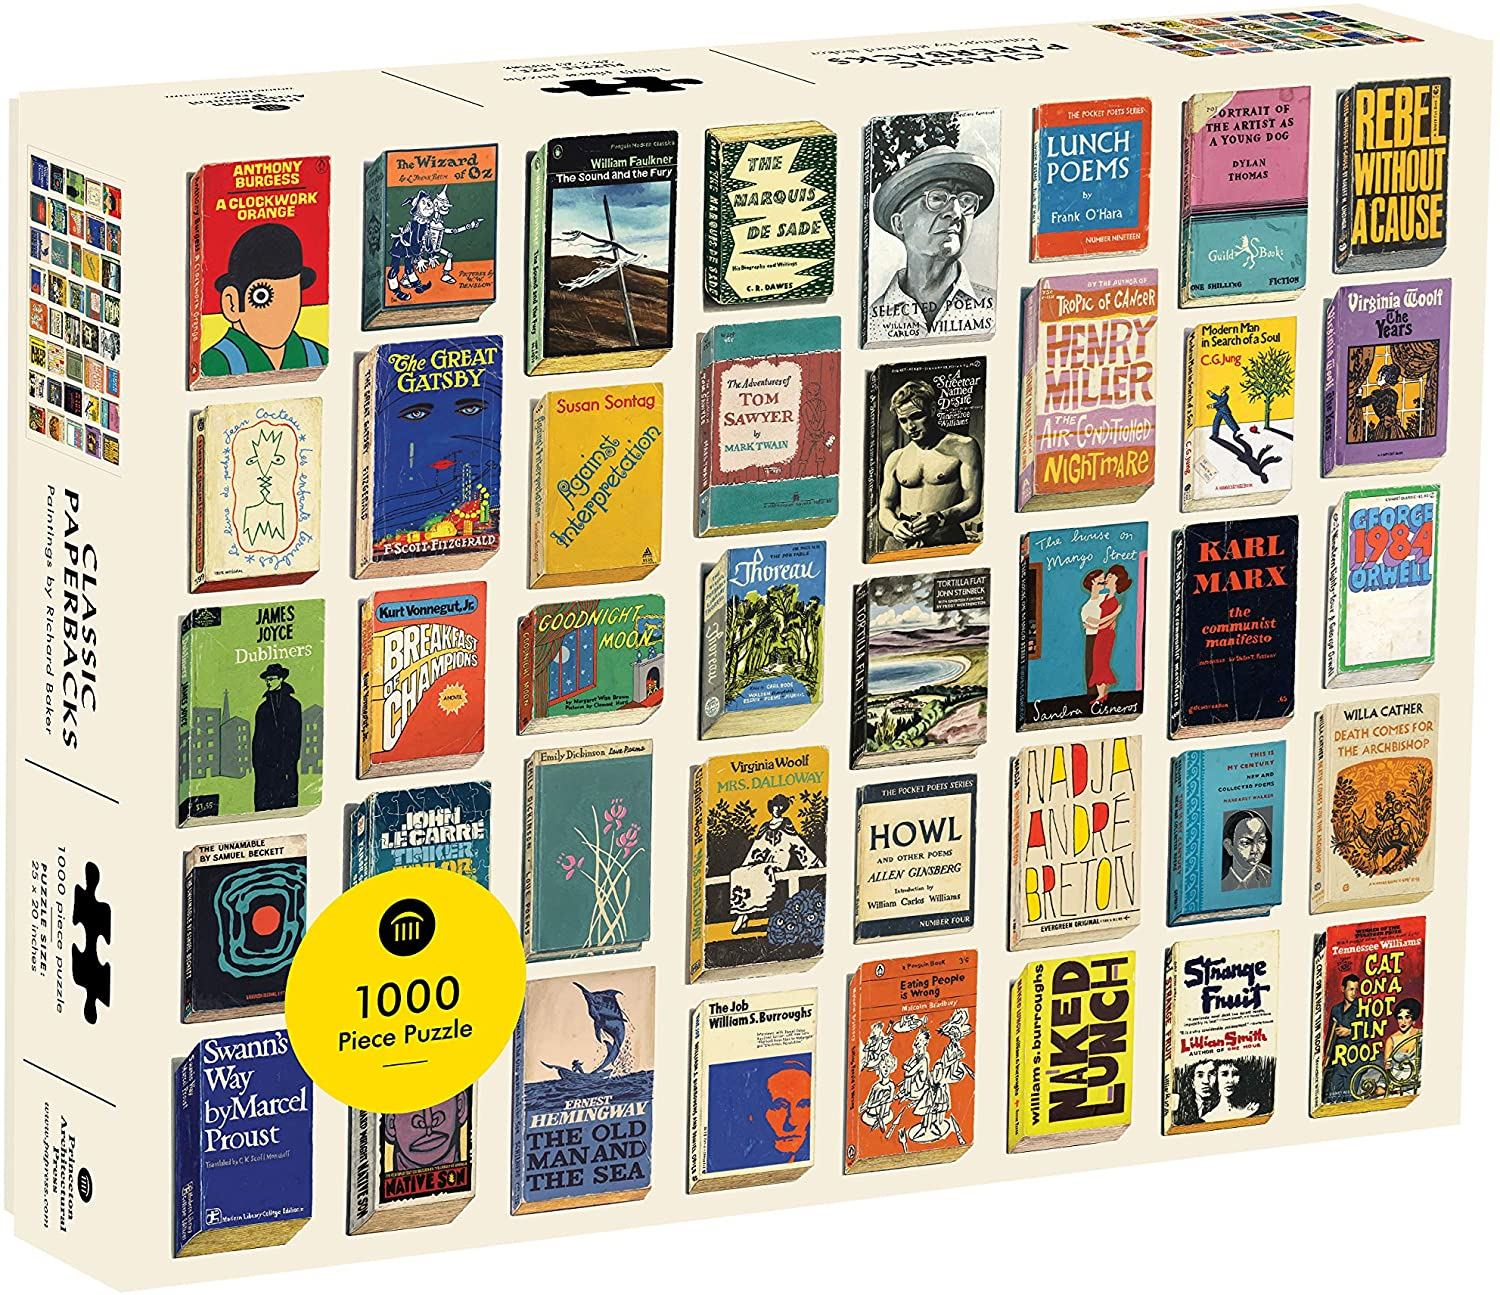 1000-piece puzzle featuring Richard Baker's paintings of paperback editions from the 1960s and '70s, which faithfully portray not only the cover's original details, but also signs of its passage through time. Baker's fascination with the design of everyday items from the recent past is here applied to every true bibliophile's delight.